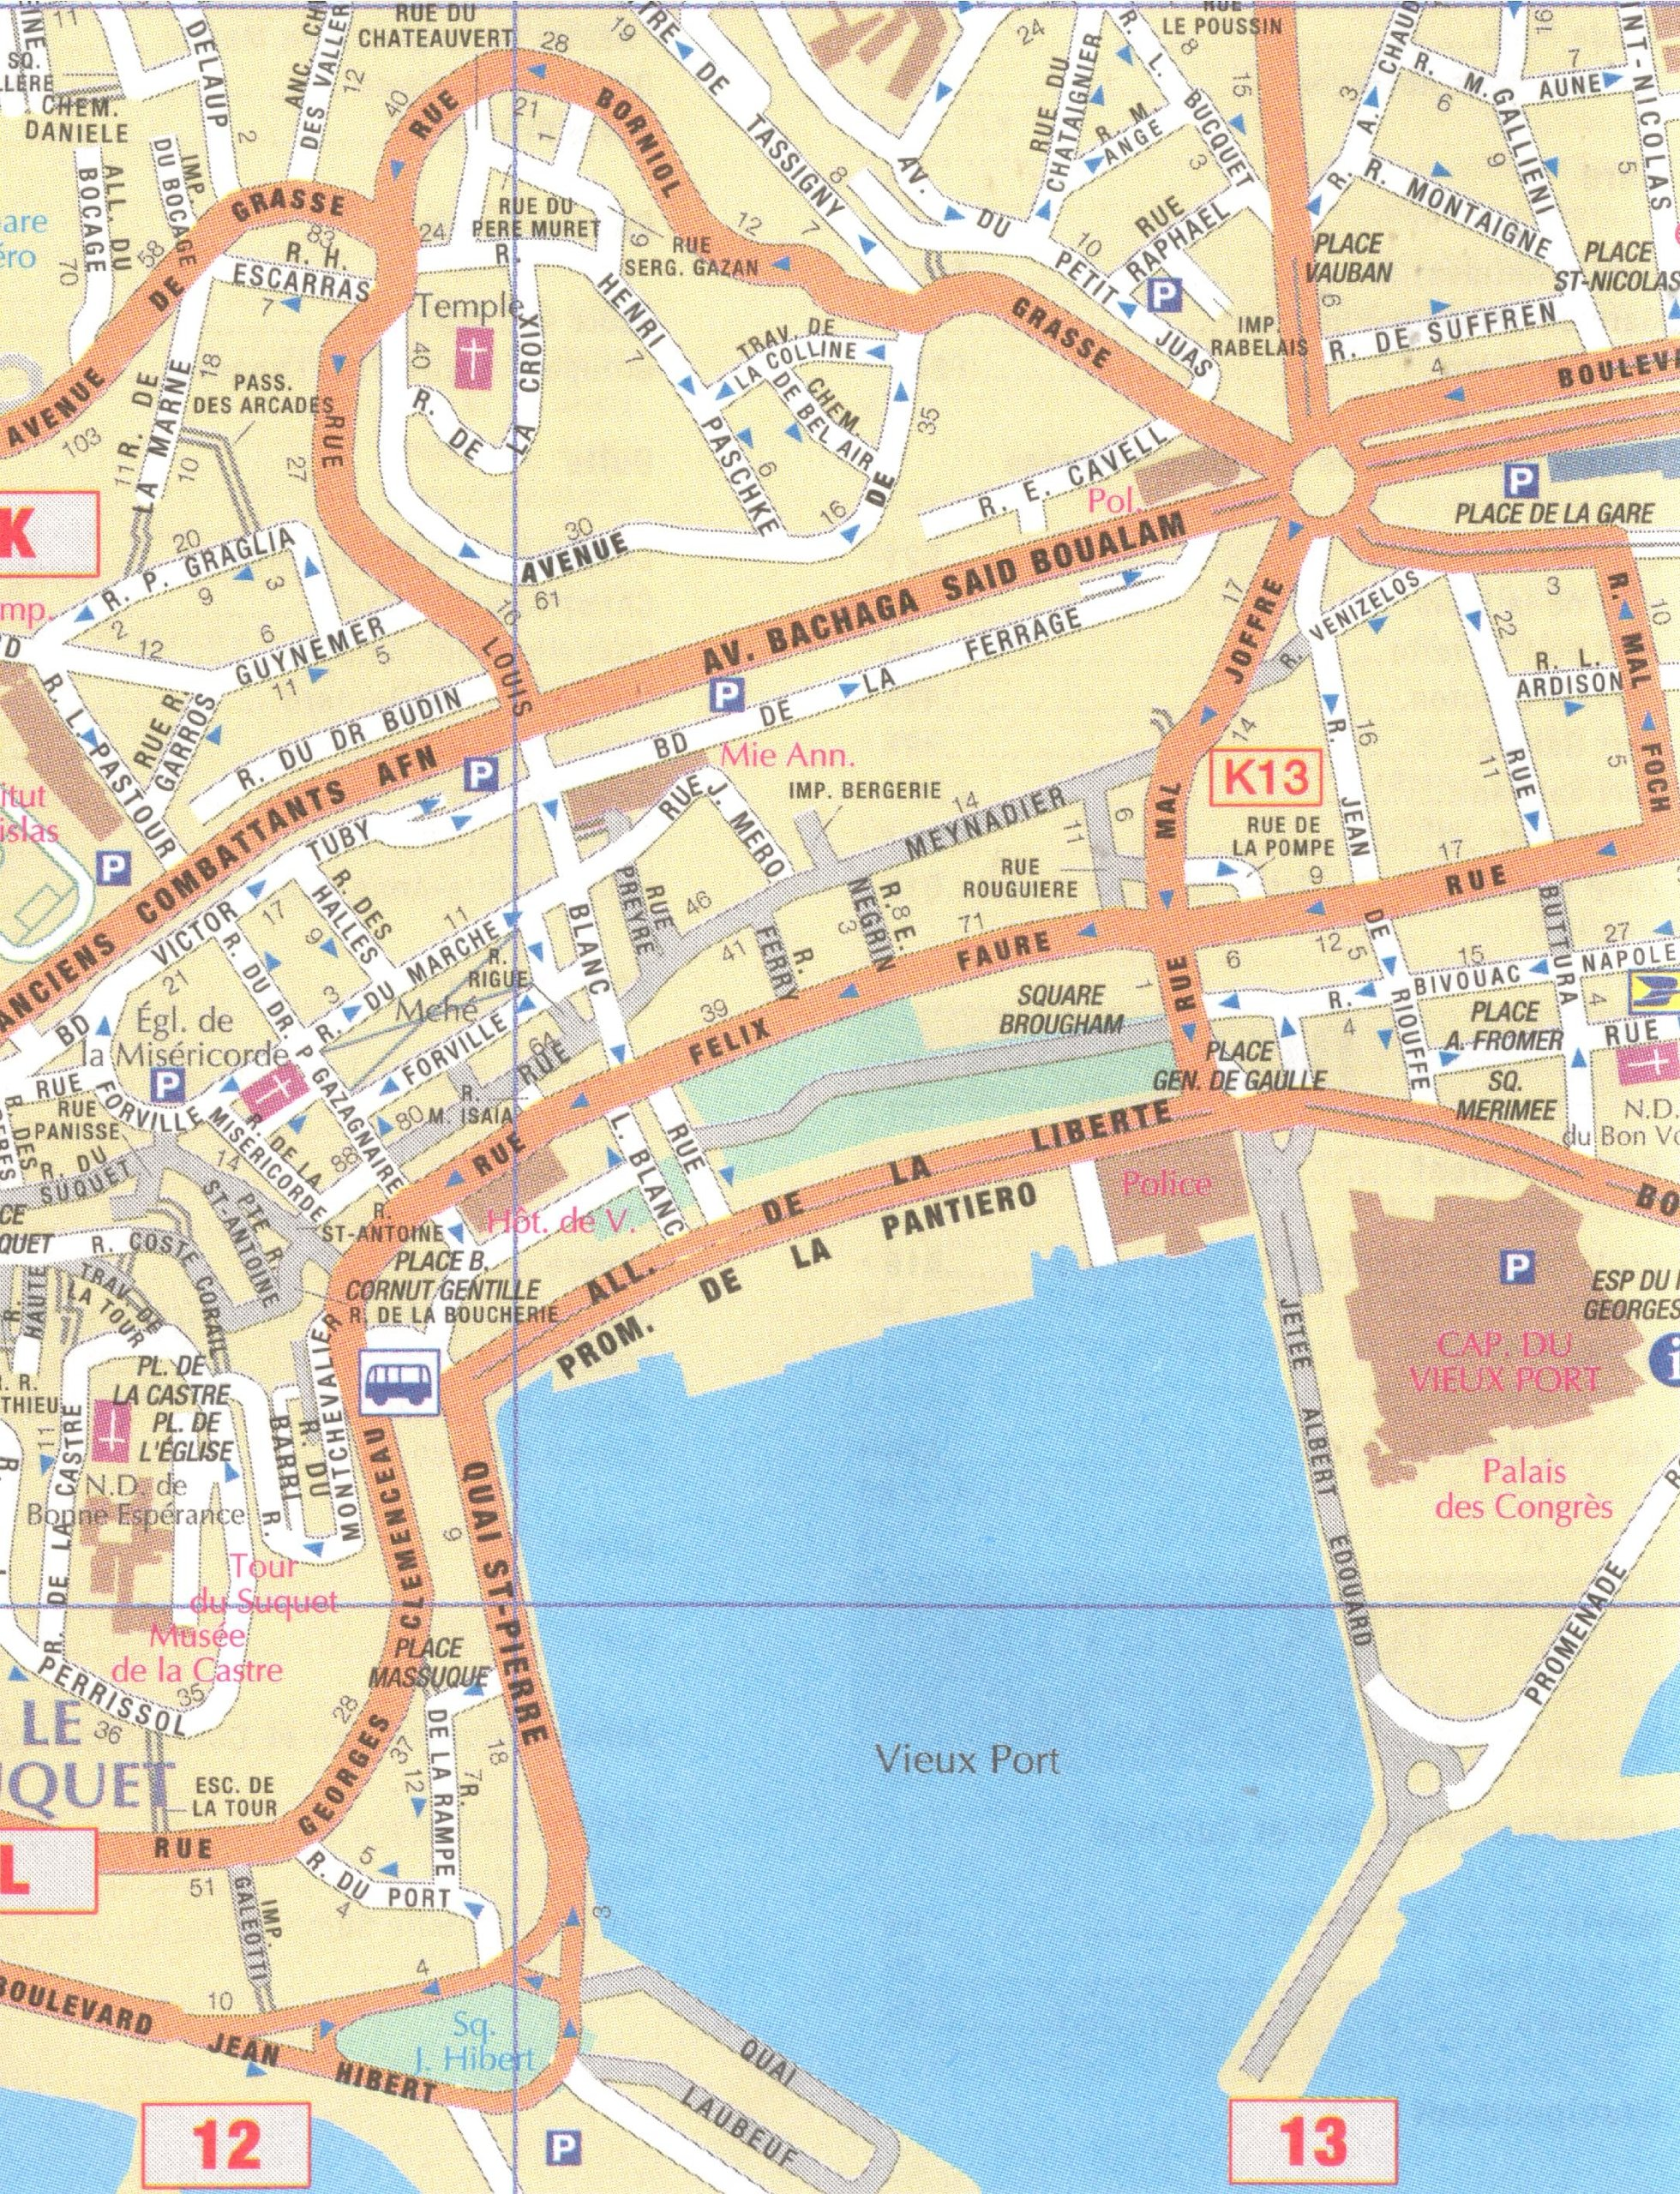 Cannes - Antibes (France) 1:13, 000 Street Map, GPS